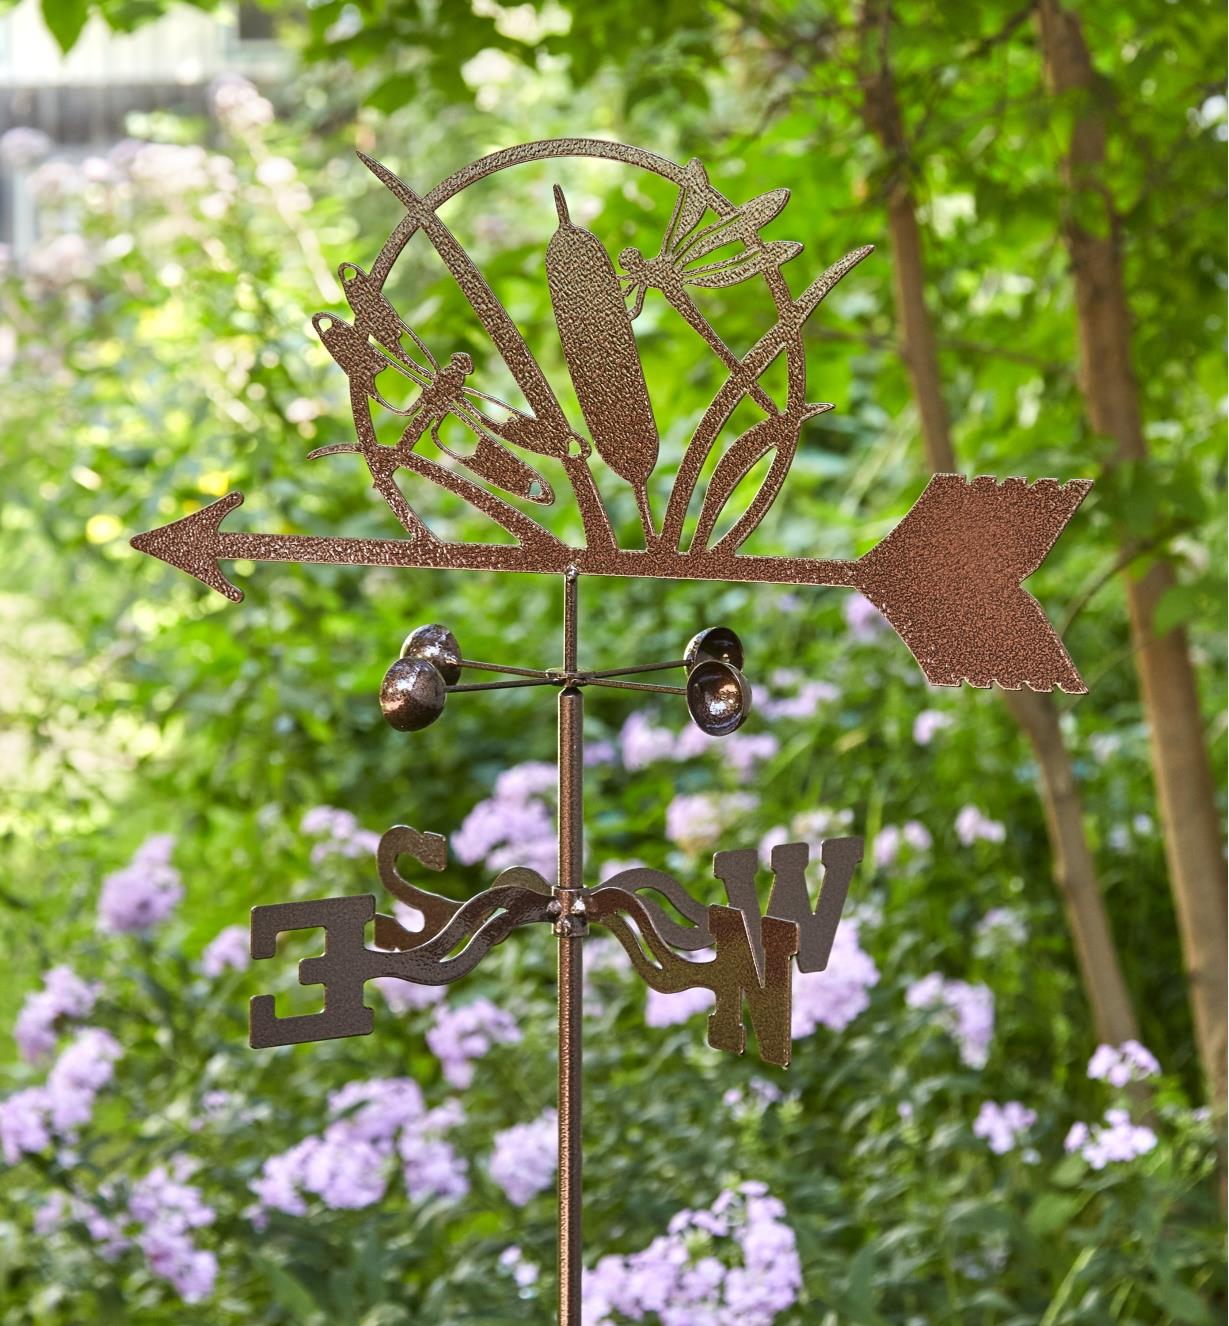 The topper, wind cups and directional of the dragonfly garden weathervane